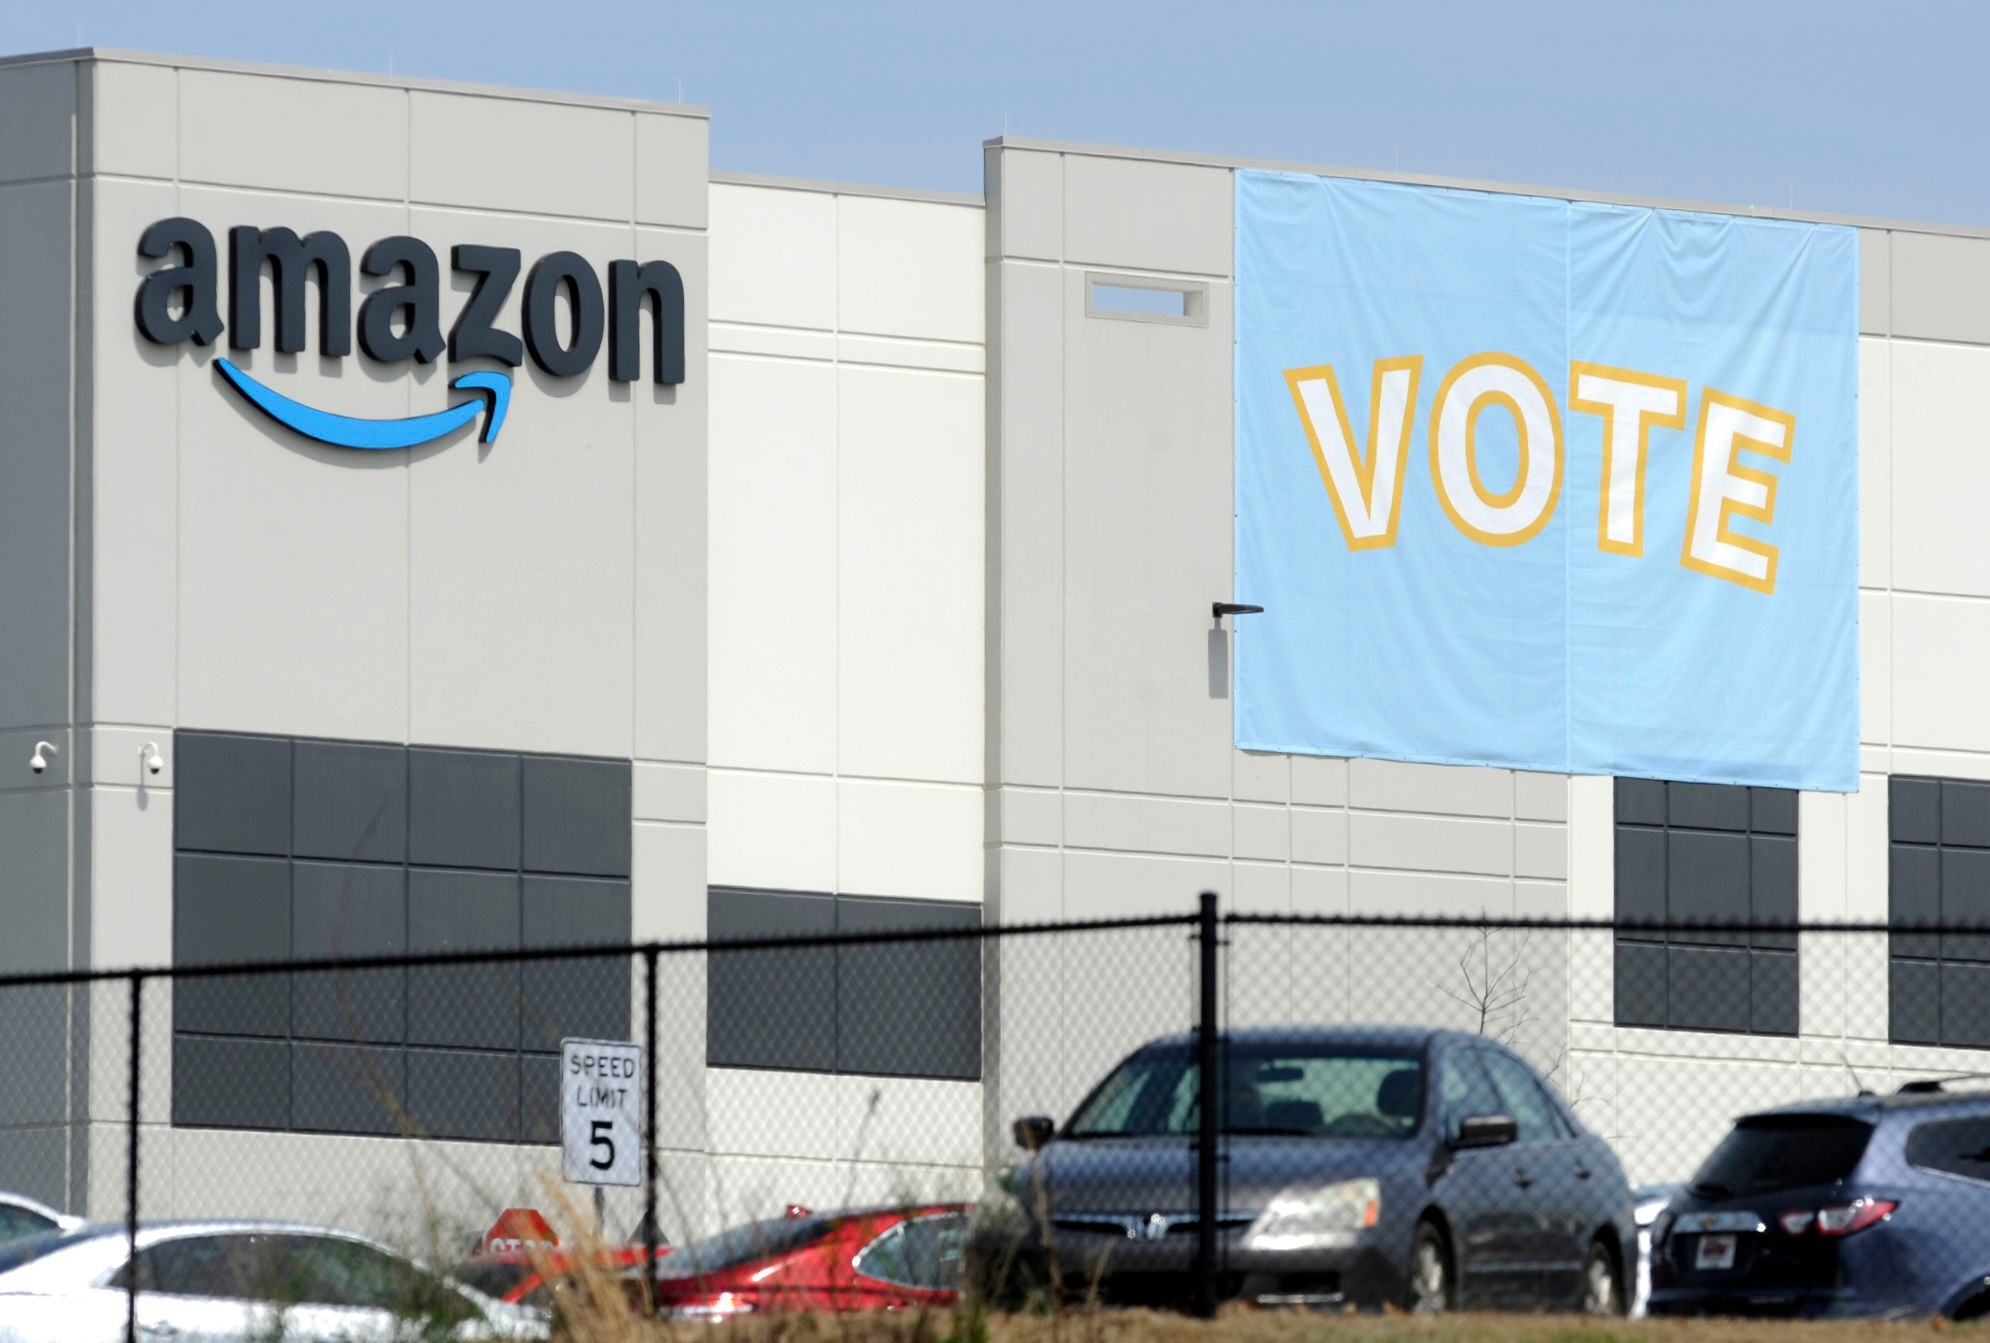 www.voanews.com: Amazon Workers Appear to Reject Unionization Push in Alabama